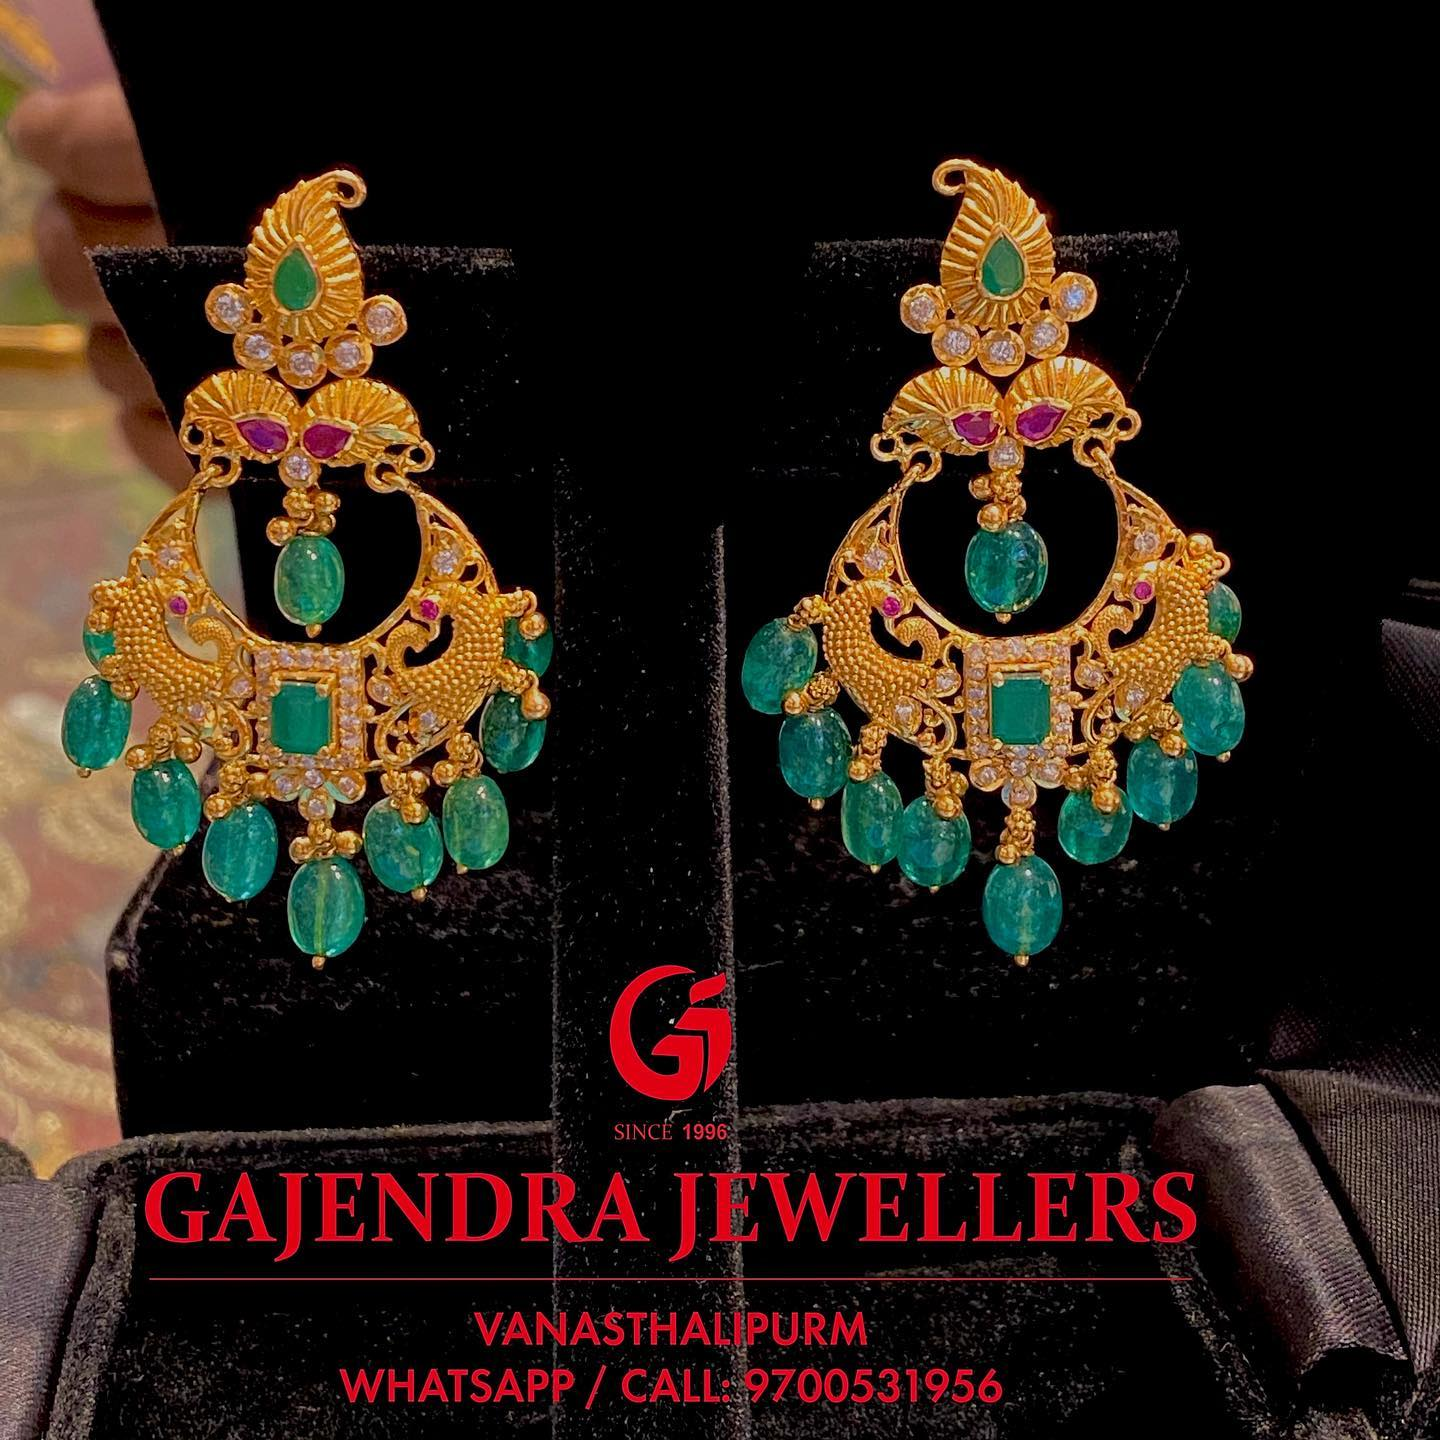 Beautiful 22k gold chaandbali studded with rubies and emerald hangings.  2020-12-31